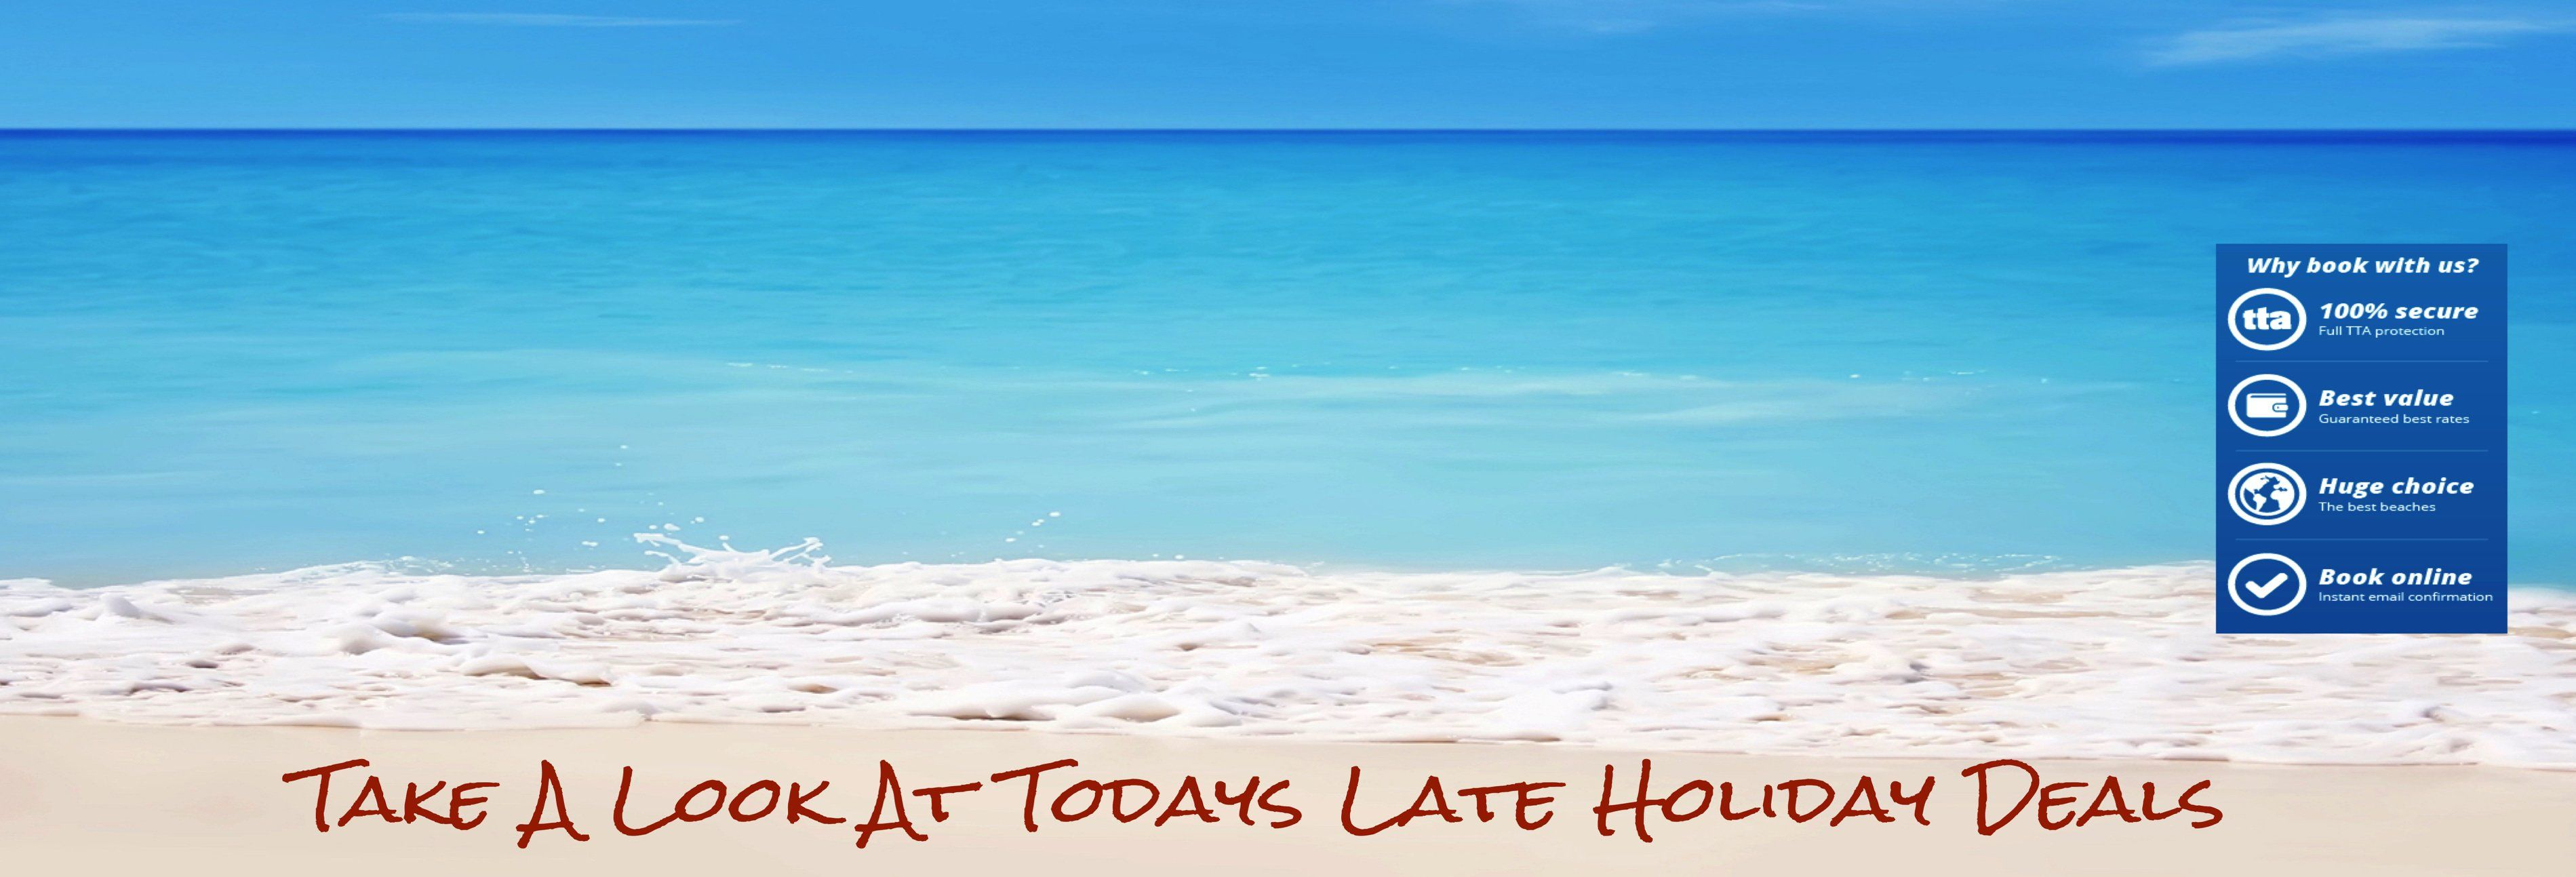 Last Minute Deals Cheap Late Holiday Deals Are What We Do Best We Are All About Passing You The Best Value Holidays Cheap Beach Vacations Holiday Deals Trip